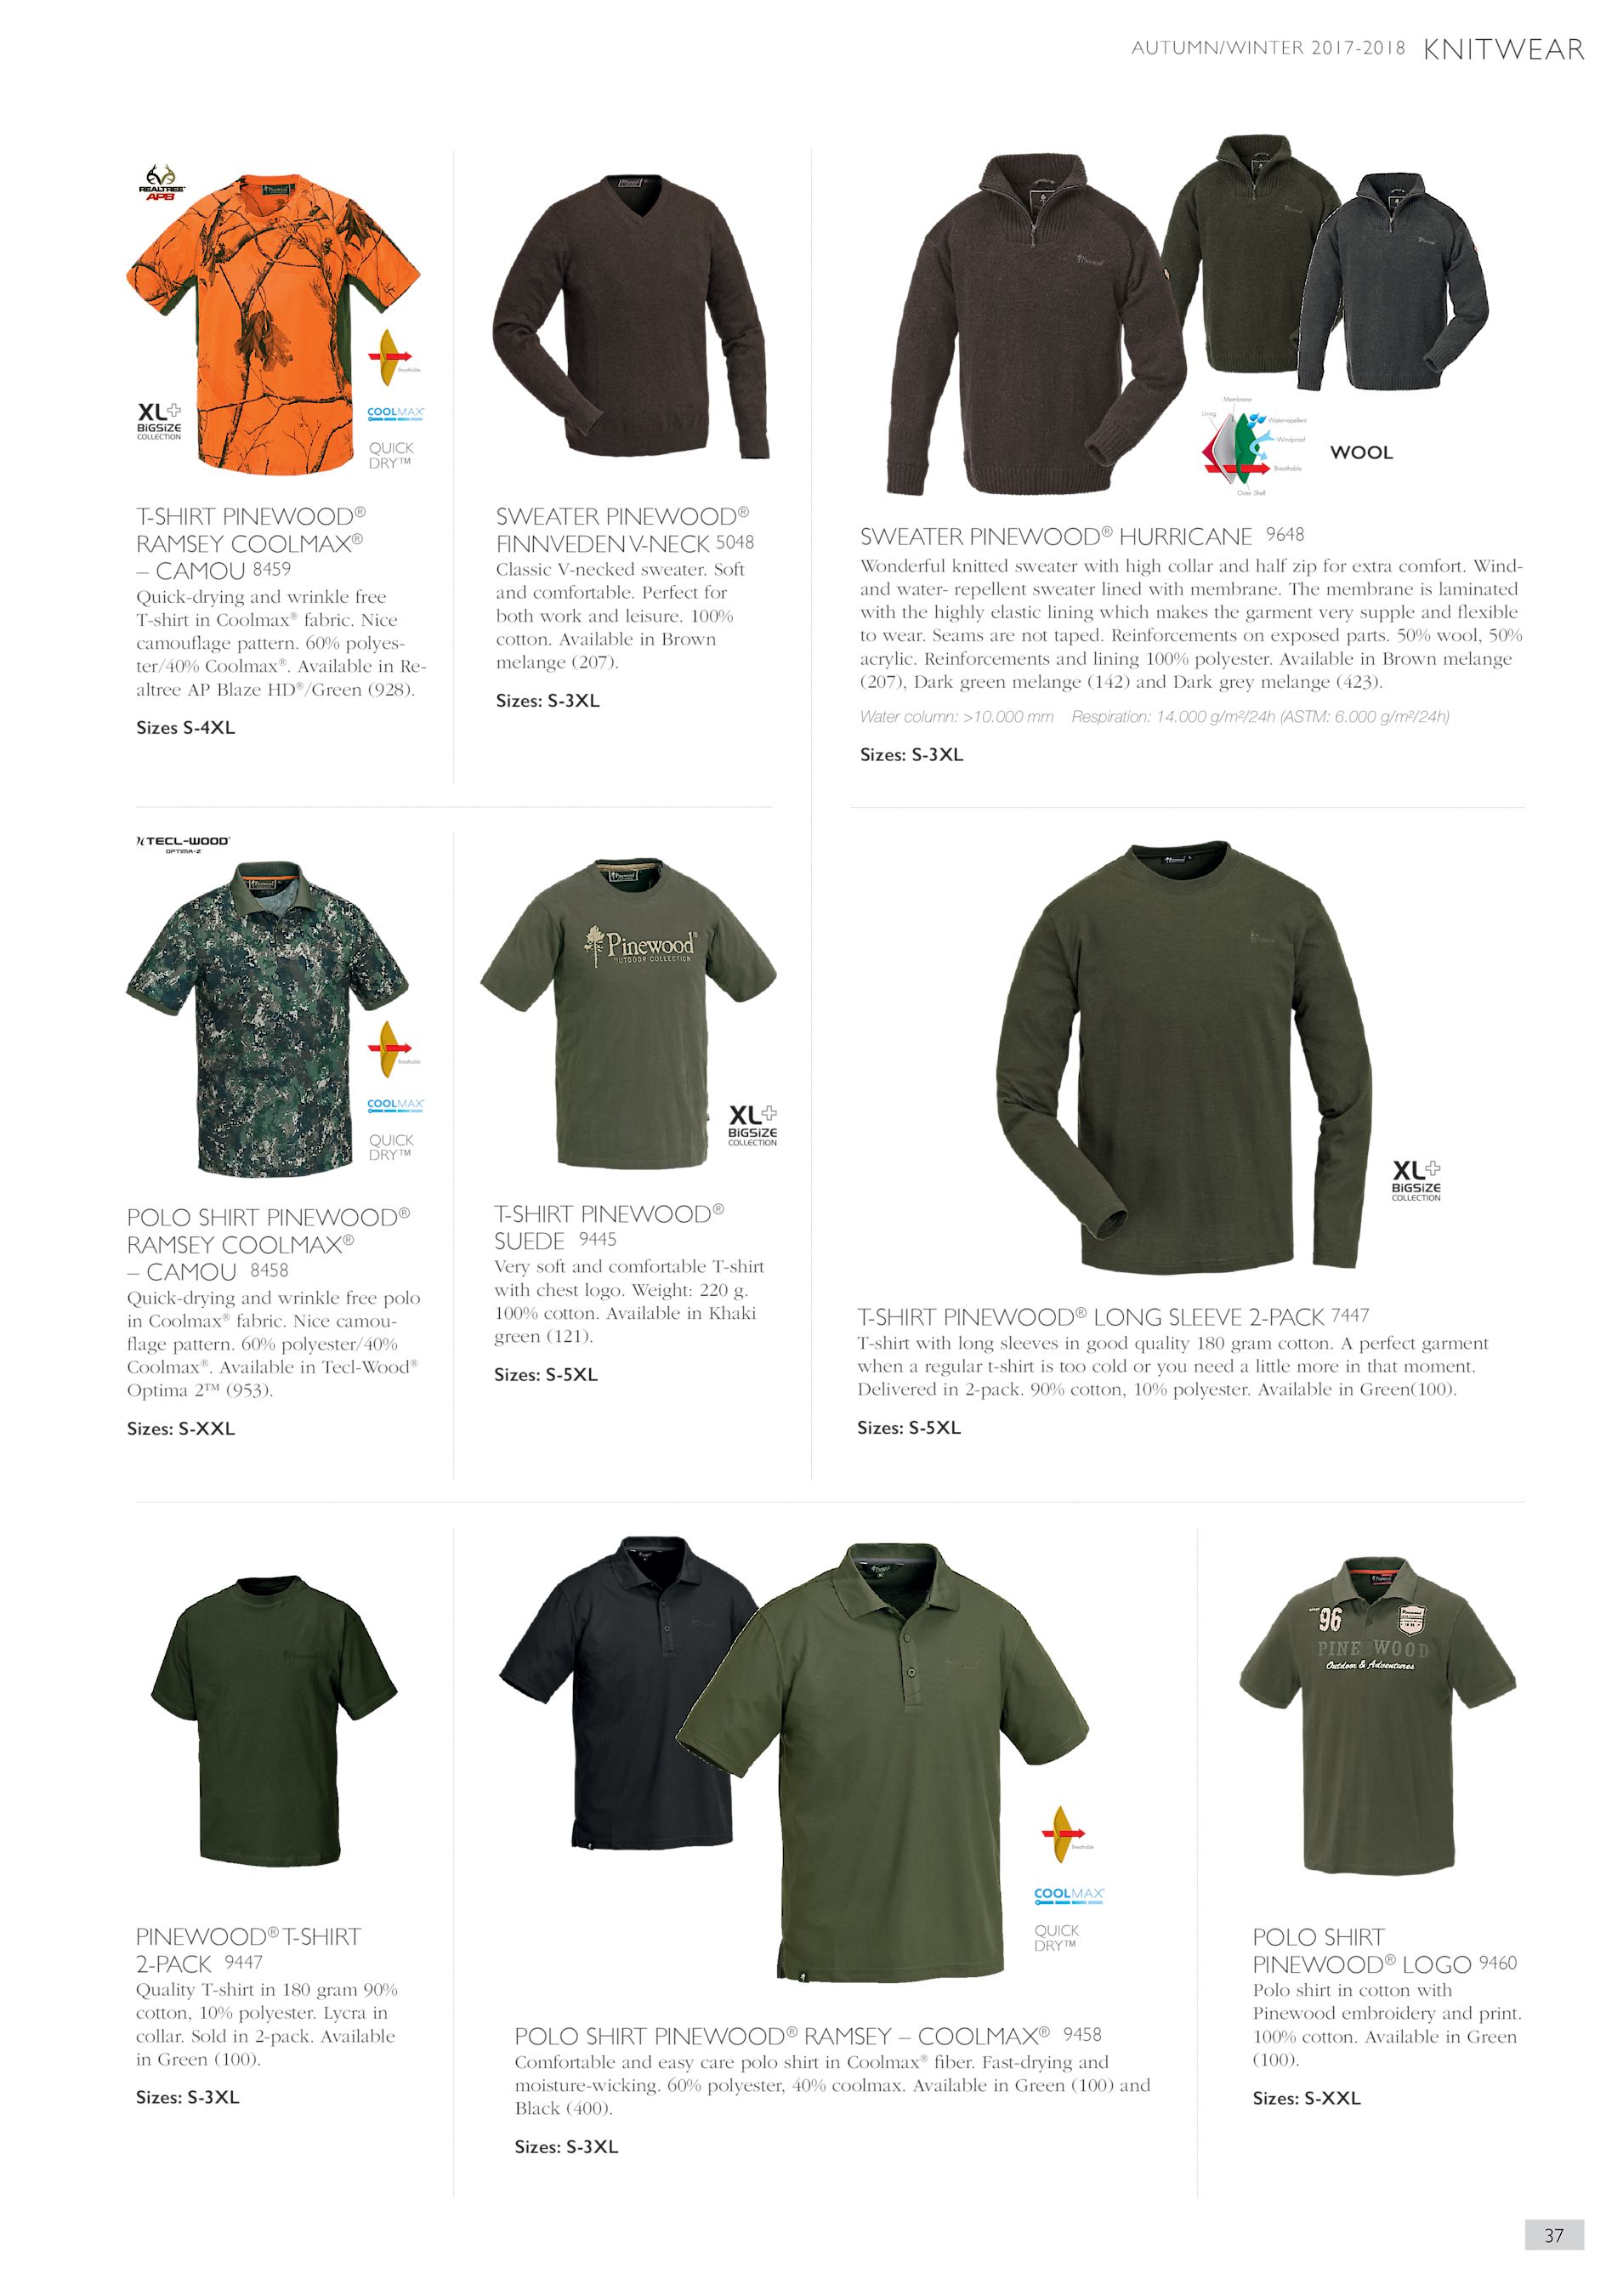 5d7f9ca06 AUTUMN WINTER 2017-2018 KNITWEAR QUICK DRY™ T-SHIRT PINEWOOD® RAMSEY  COOLMAX® – CAMOU 8459 SWEATER PINEWOOD® FINNVEDEN V-NECK 5048 Quick-drying  and wrinkle ...